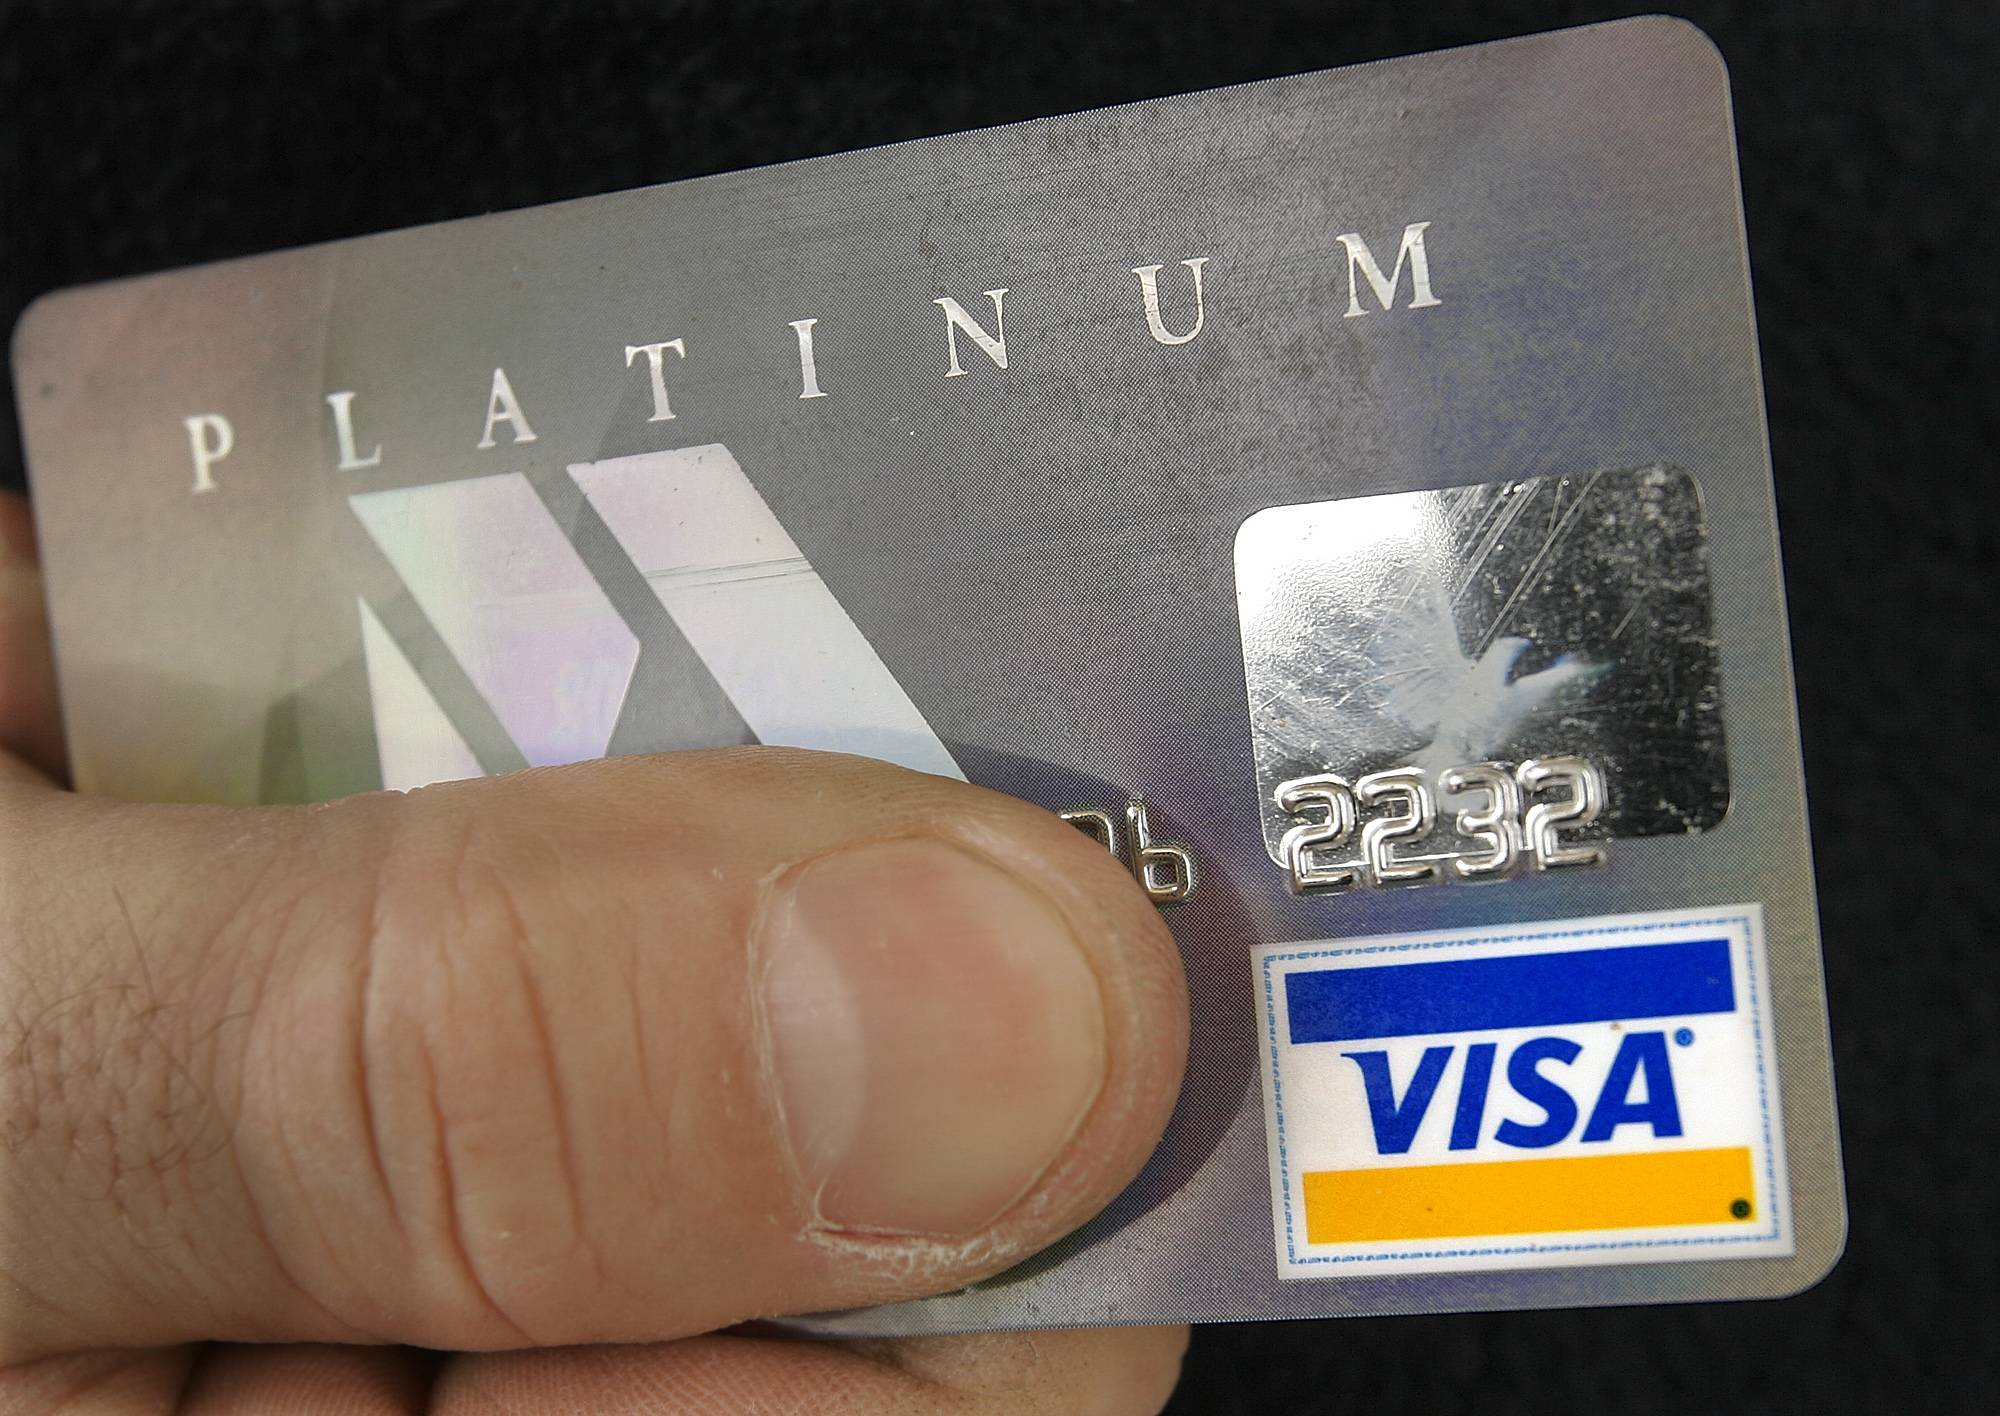 use of credit cards It allows the holder to pay for goods and services based on the promise made by the holder to pay for them at a later date credit cards have become common place in personal finance over the last few years, their popularity is reflected clearly in the number of people who are credit cardholders.